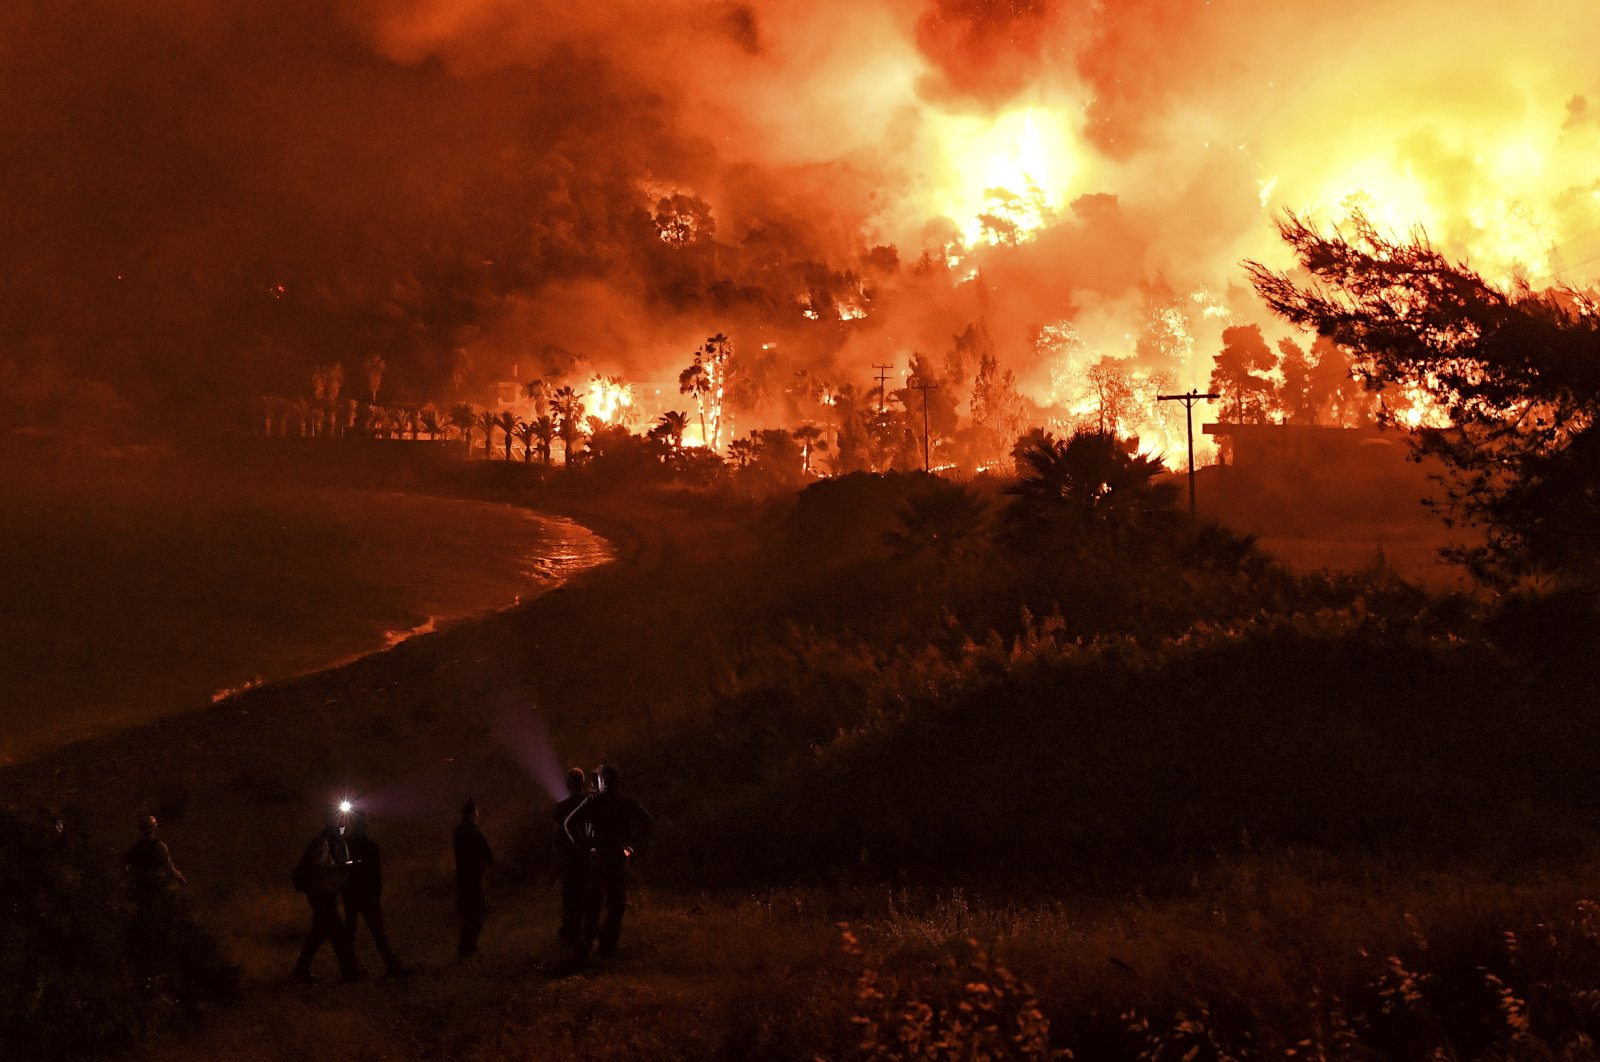 Fires burn during a wildfire near the village of Schinos, near Corinth, Greece, May 19, 2021. (AP Photo)